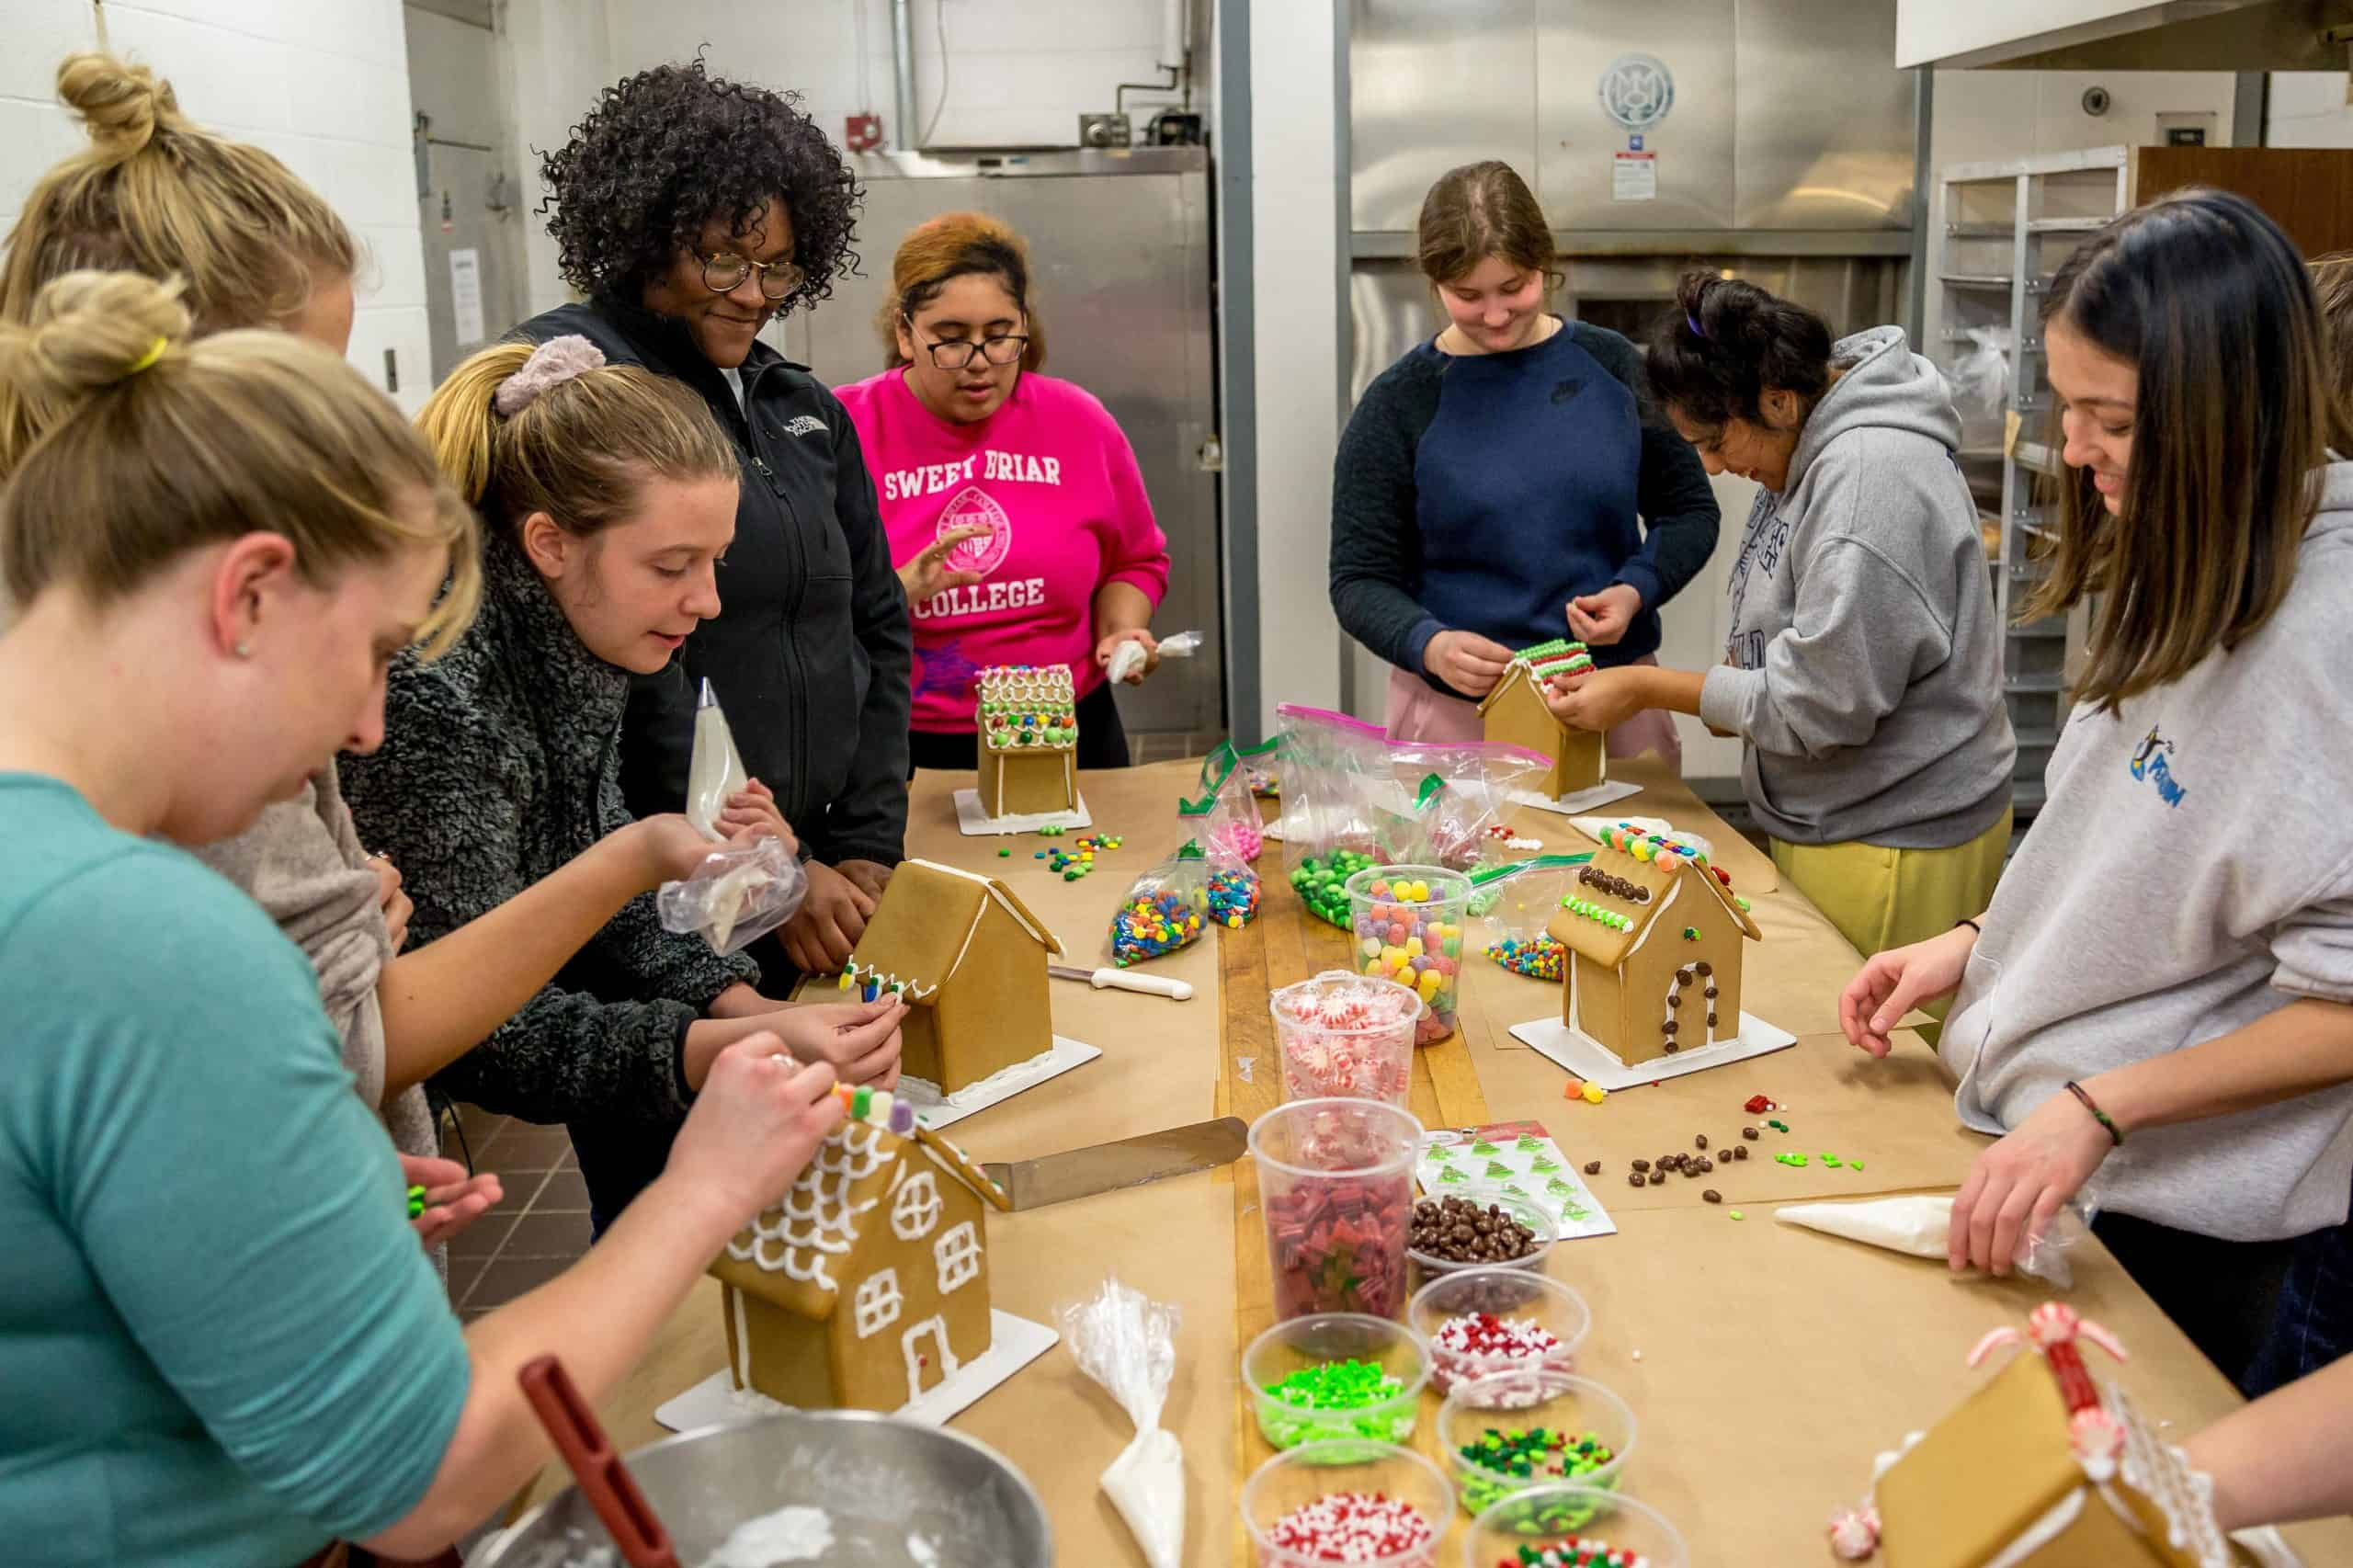 Students decorating gingerbread houses